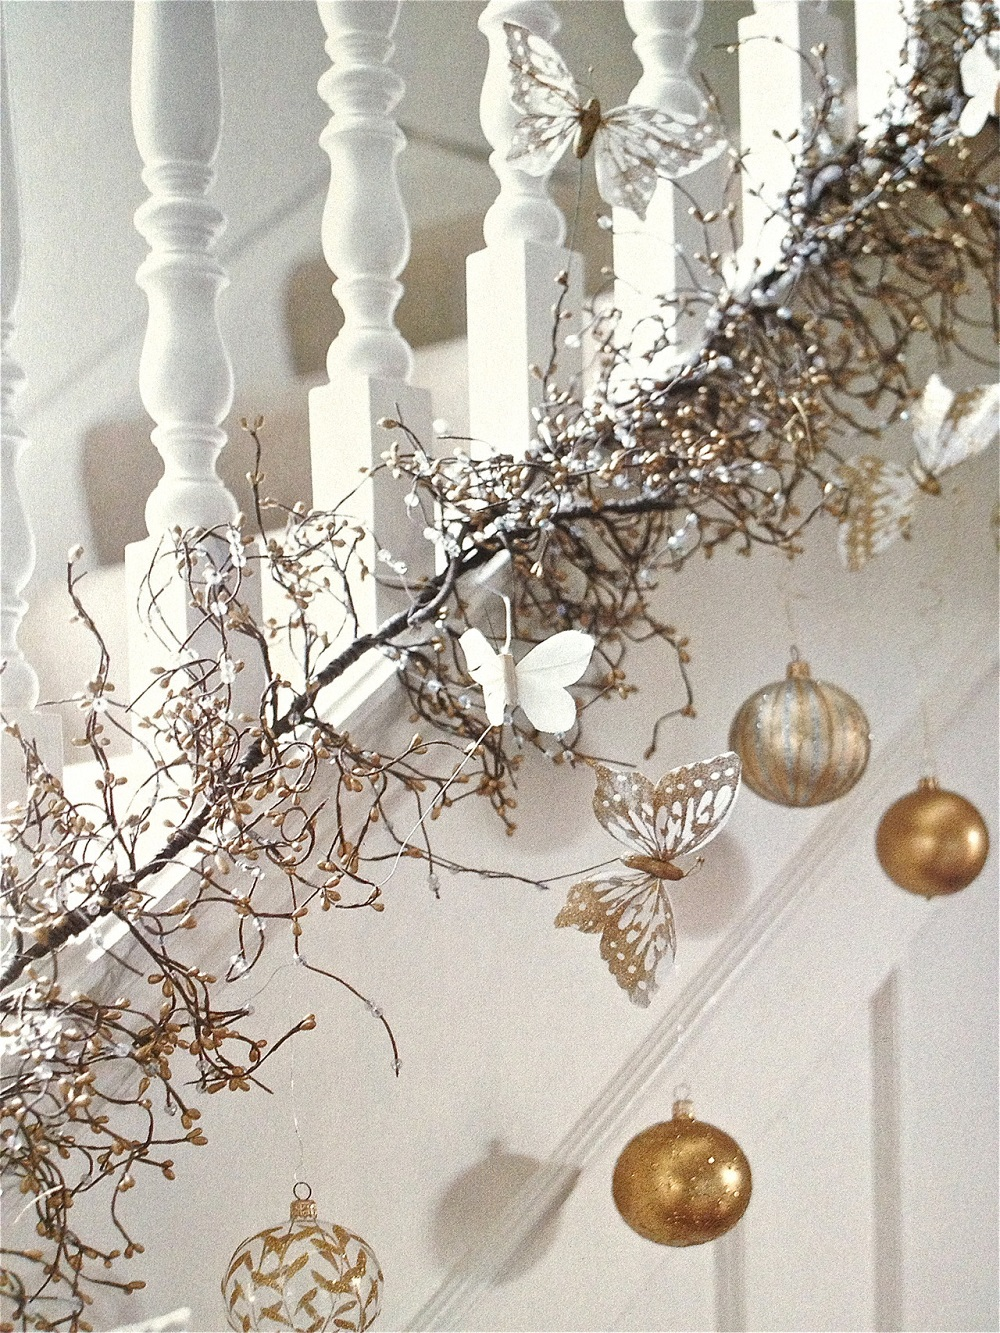 t5 Great decoration ideas for Christmas stairs that you should definitely try